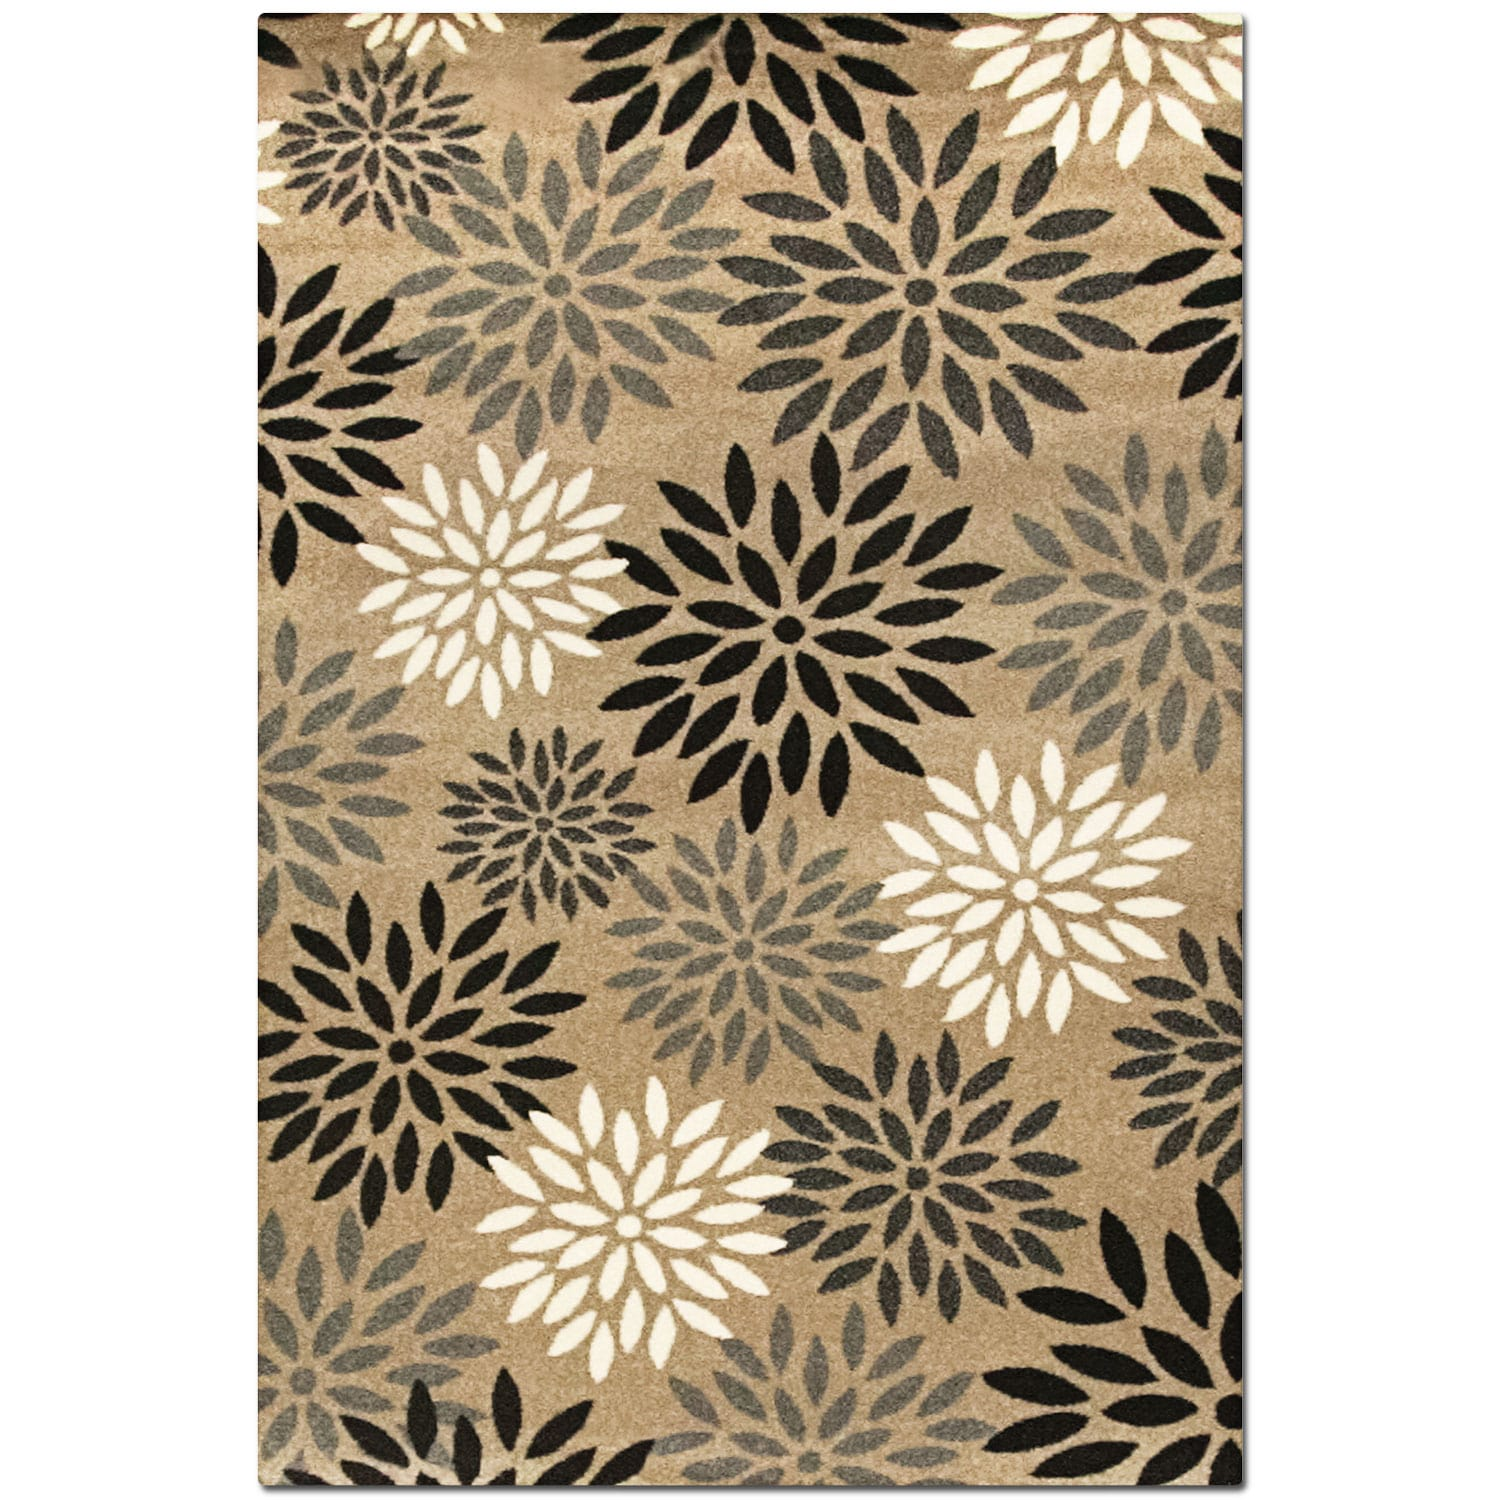 casa 5 39 x 8 39 area rug tan and black american signature. Black Bedroom Furniture Sets. Home Design Ideas